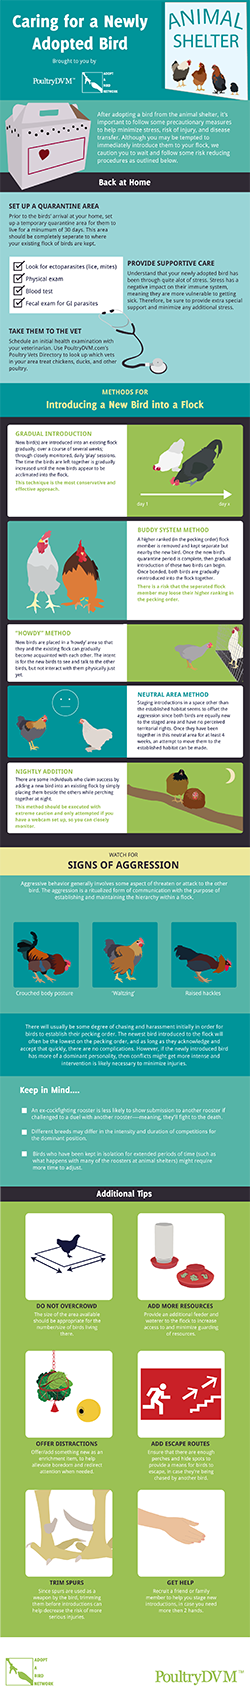 Caring for your Newly Adopted Chicken